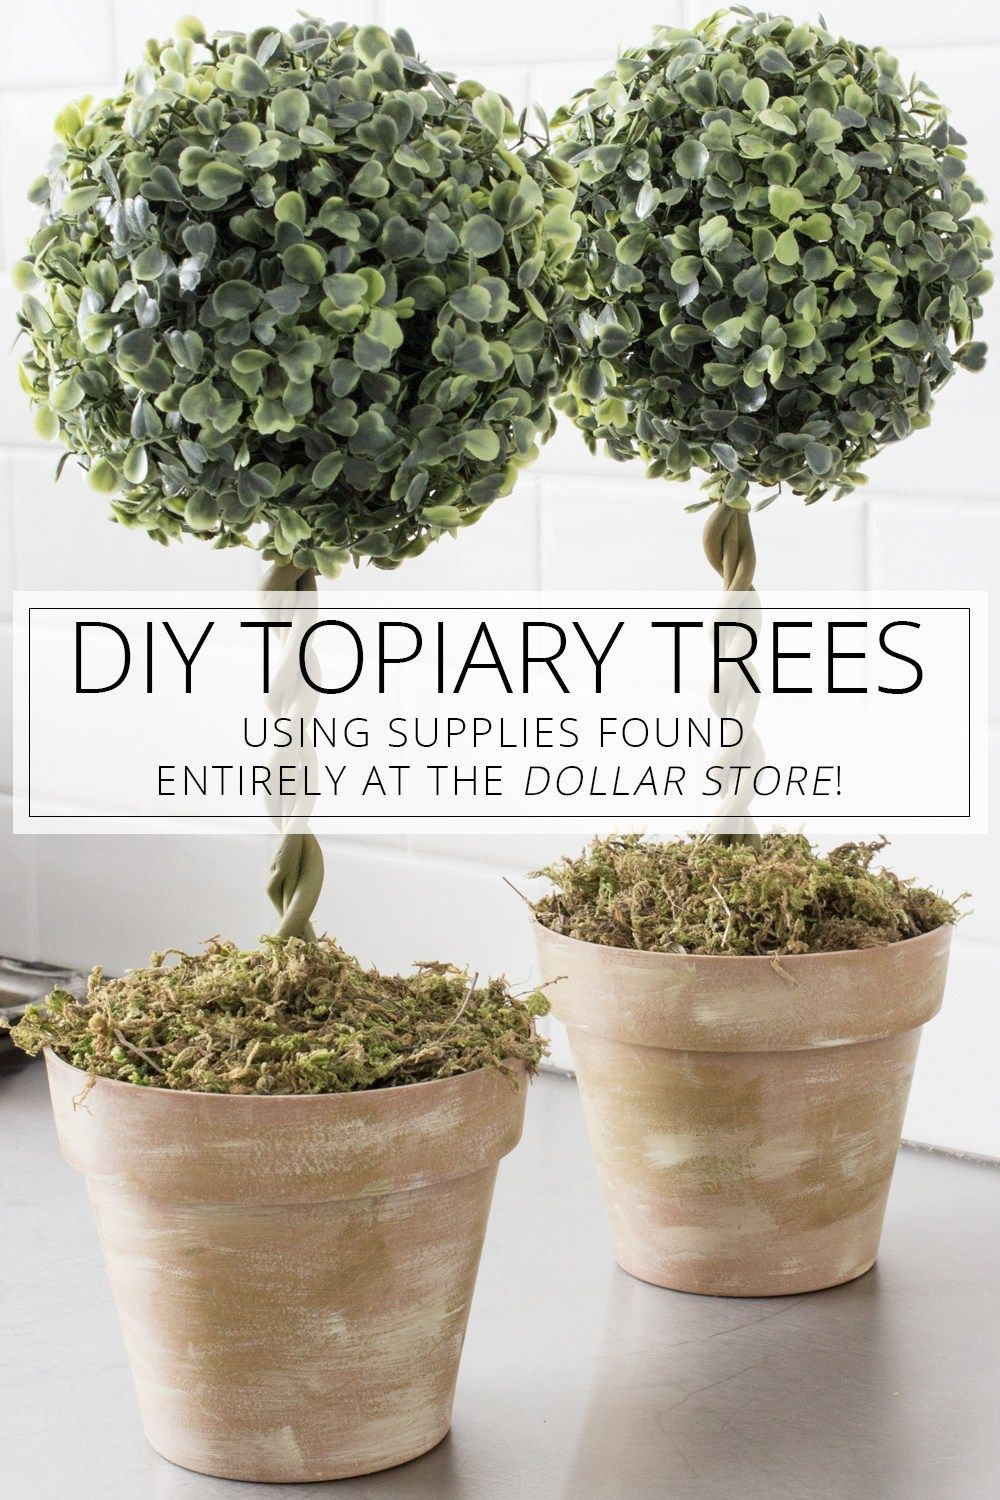 DIY Topiary Trees from Dollar Store Supplies -   19 dollar store pots ideas